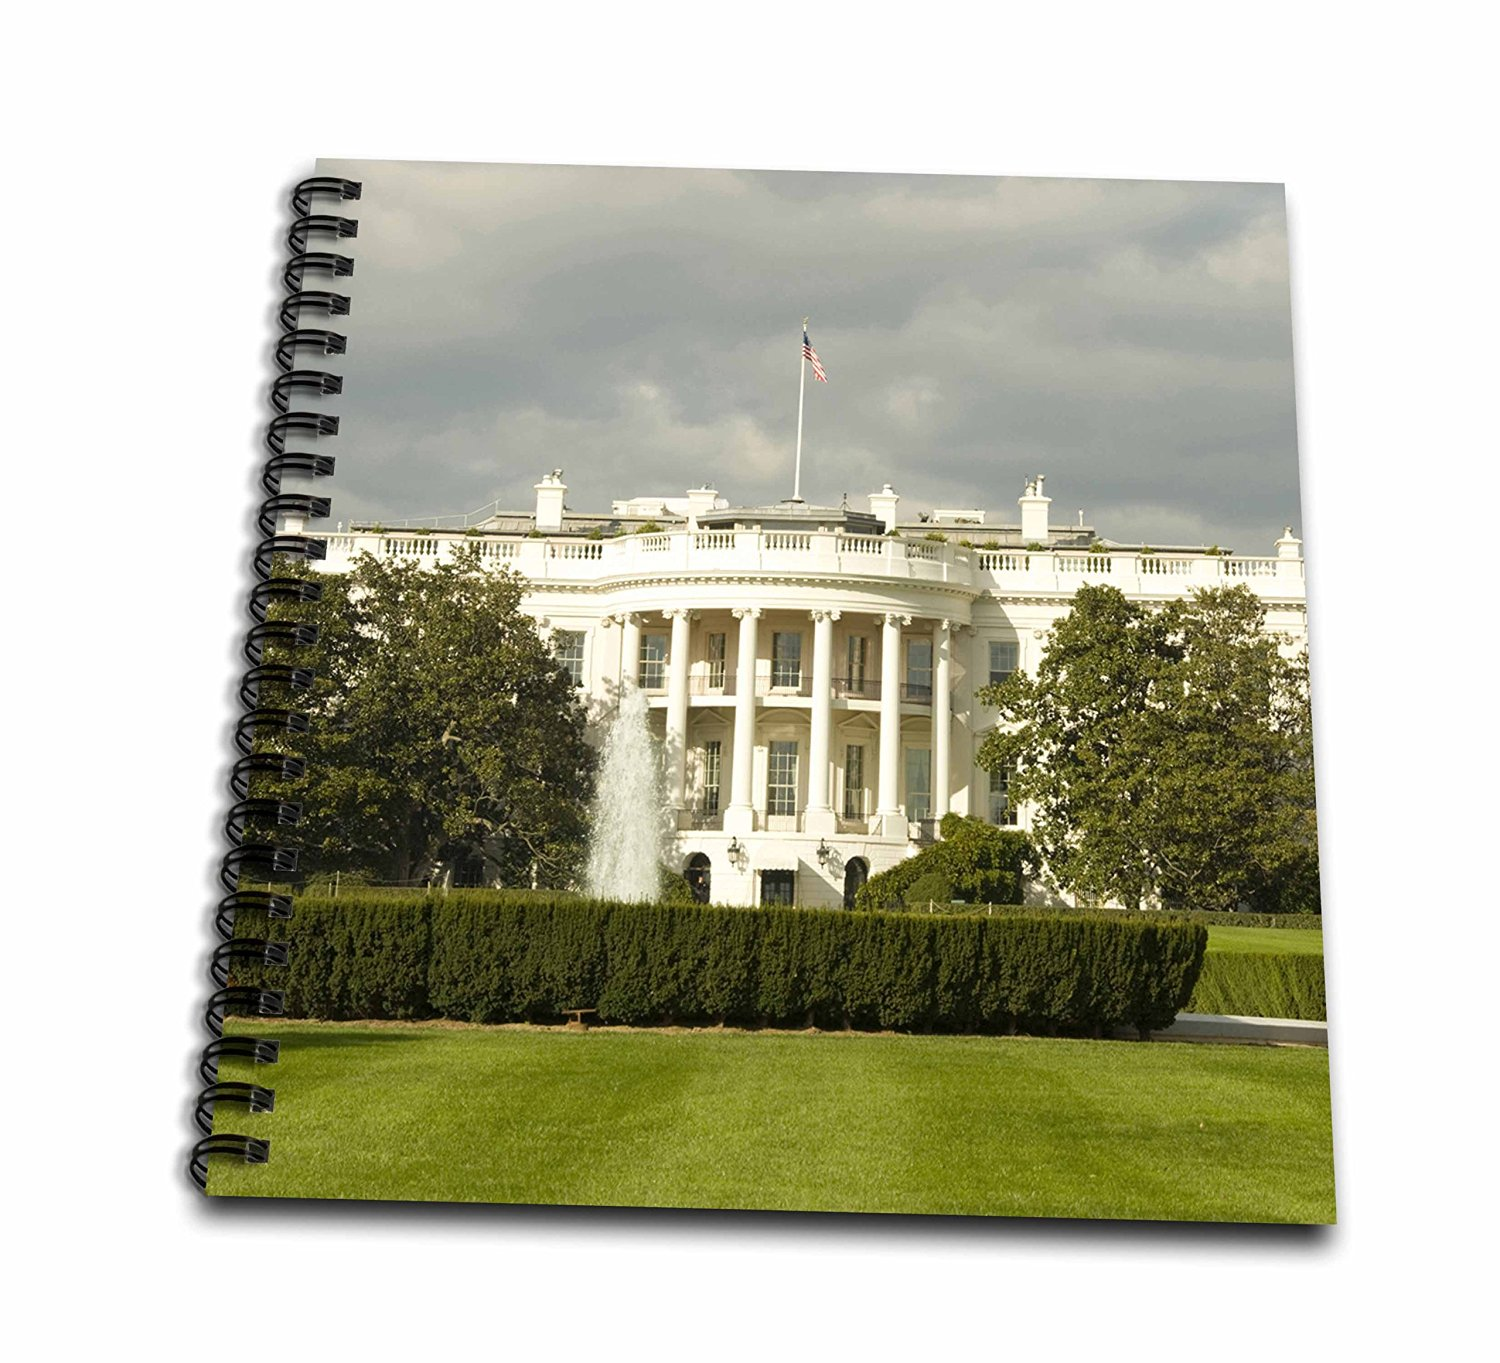 """3D Rose db_143511_1 3dRose USA, Washington DC, White House, US Presidential Home-US09 LFO0158-Lee Foster-Drawing Book, 8 by 8-inch, 8"""" x 8"""""""